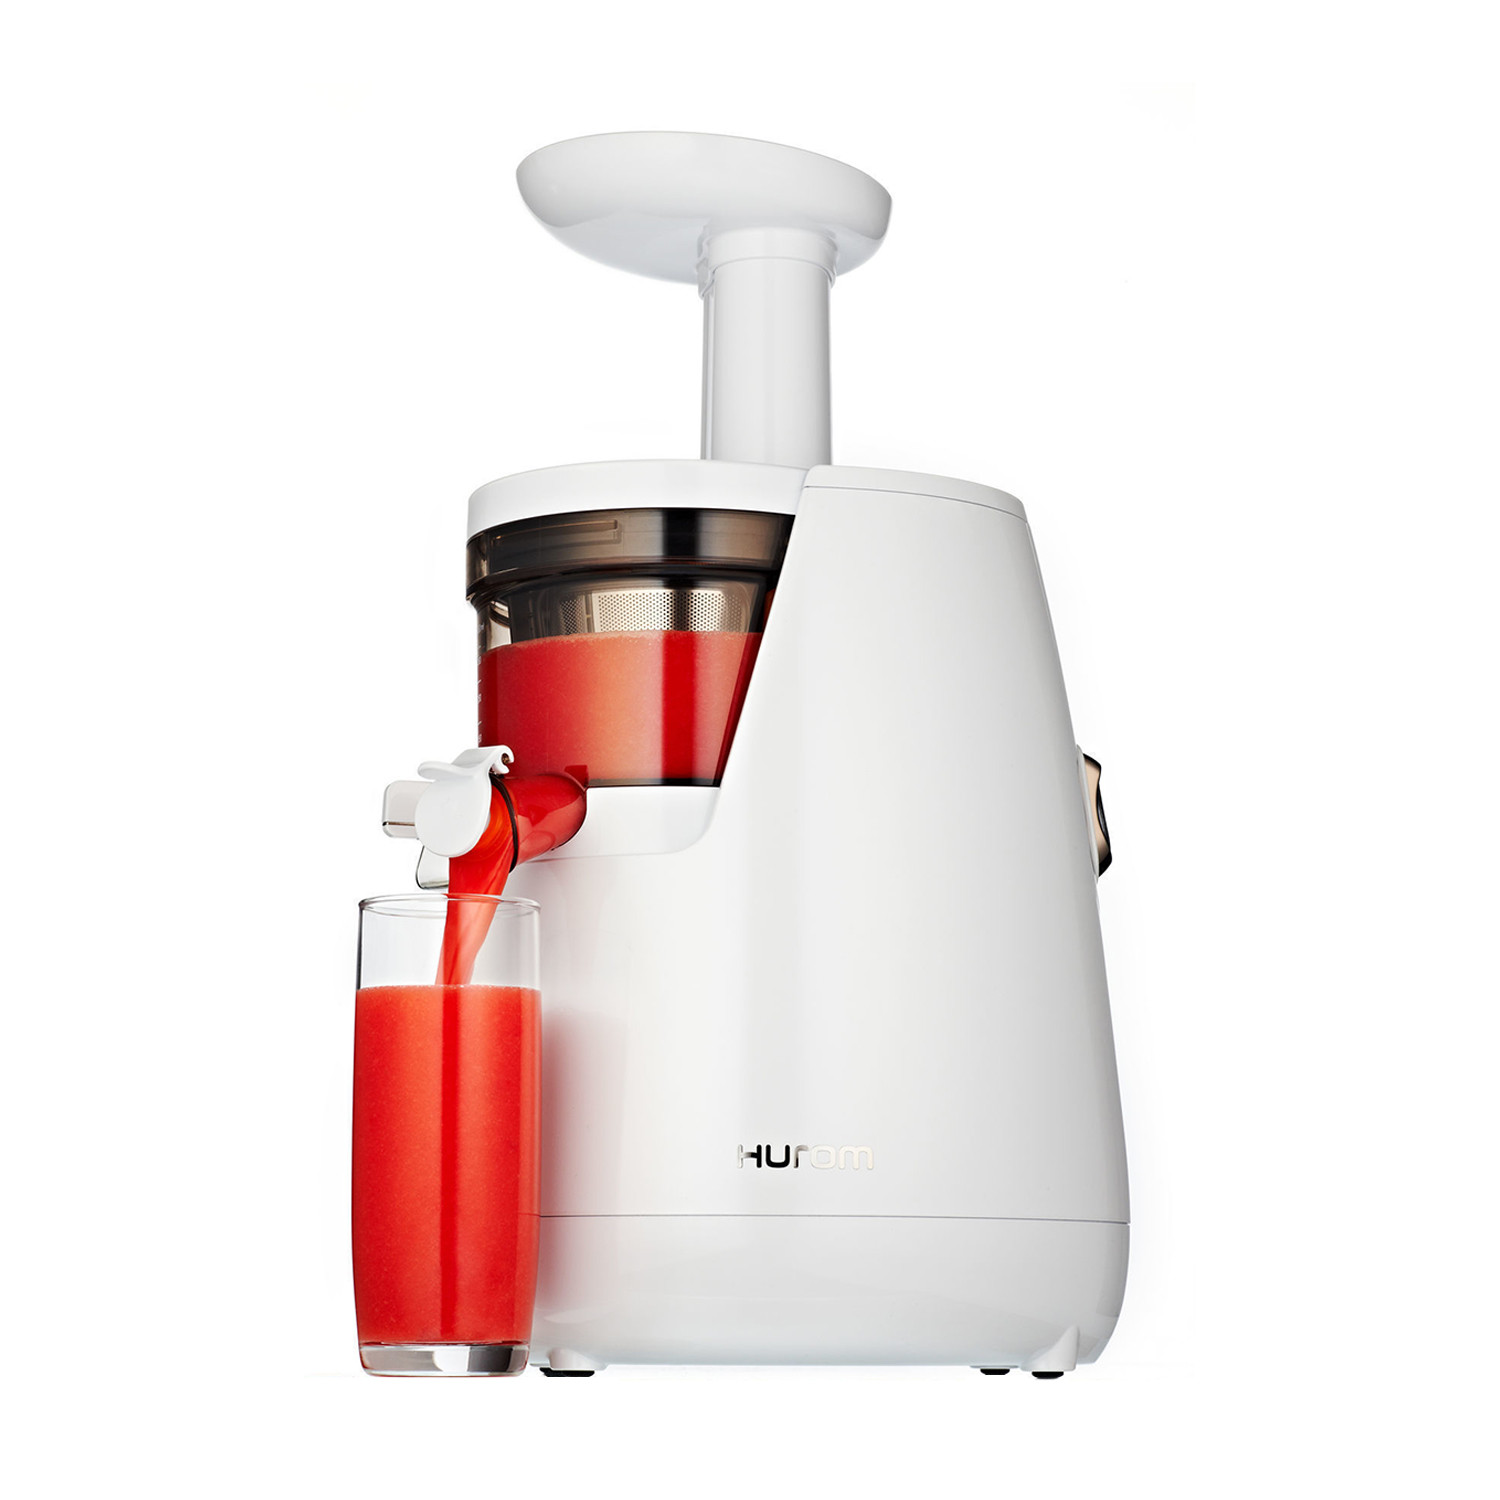 Panasonic Slow Juicer Vs Hurom Slow Juicer : Slow Juicer Hurom. . Hurom Hu100 vs Hurom Elite Slow Juicer Hhsbb11. . Hurom Elite Slow Juicer ...